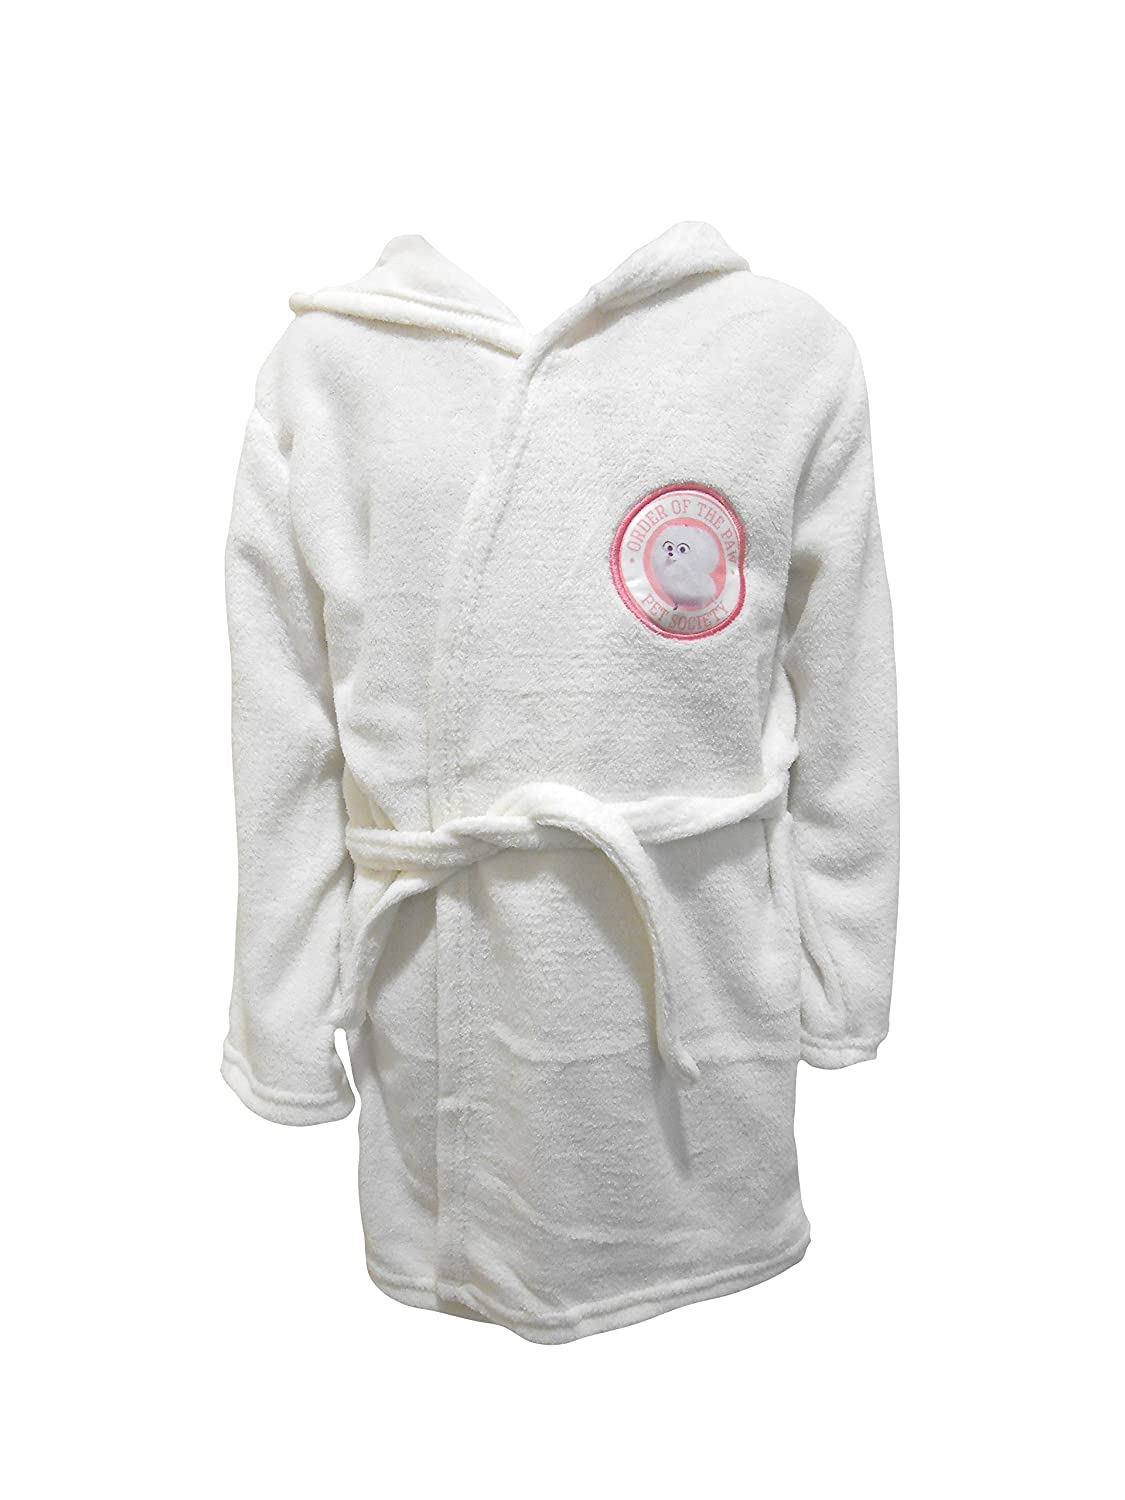 The Secret Life Of Pets Gidget Kids Hooded Fleece Bathrobe Dressing Gown The Cookie Company